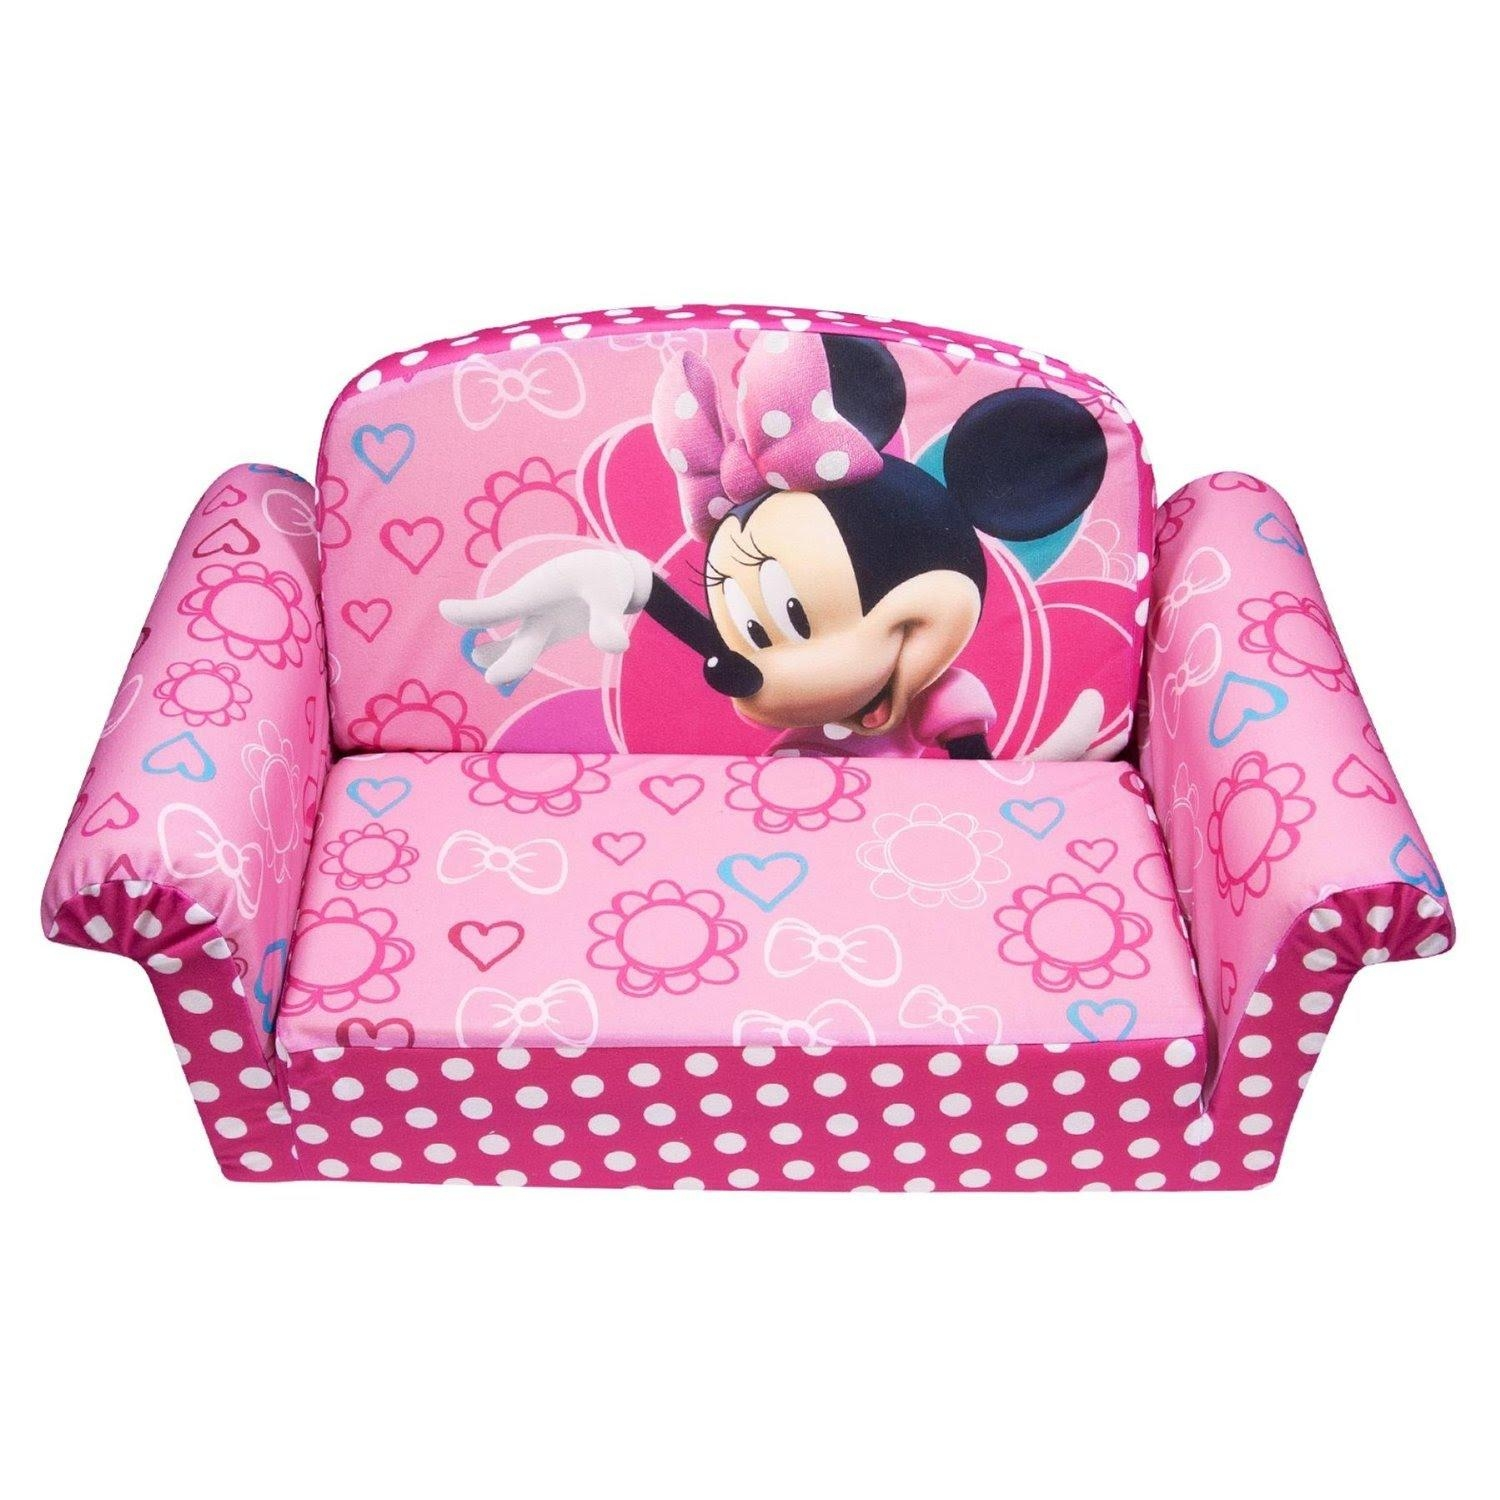 Review: Marshmallow Children's Furniture – 2 In 1 Flip Open Sofa Regarding Mickey Mouse Clubhouse Couches (View 15 of 20)